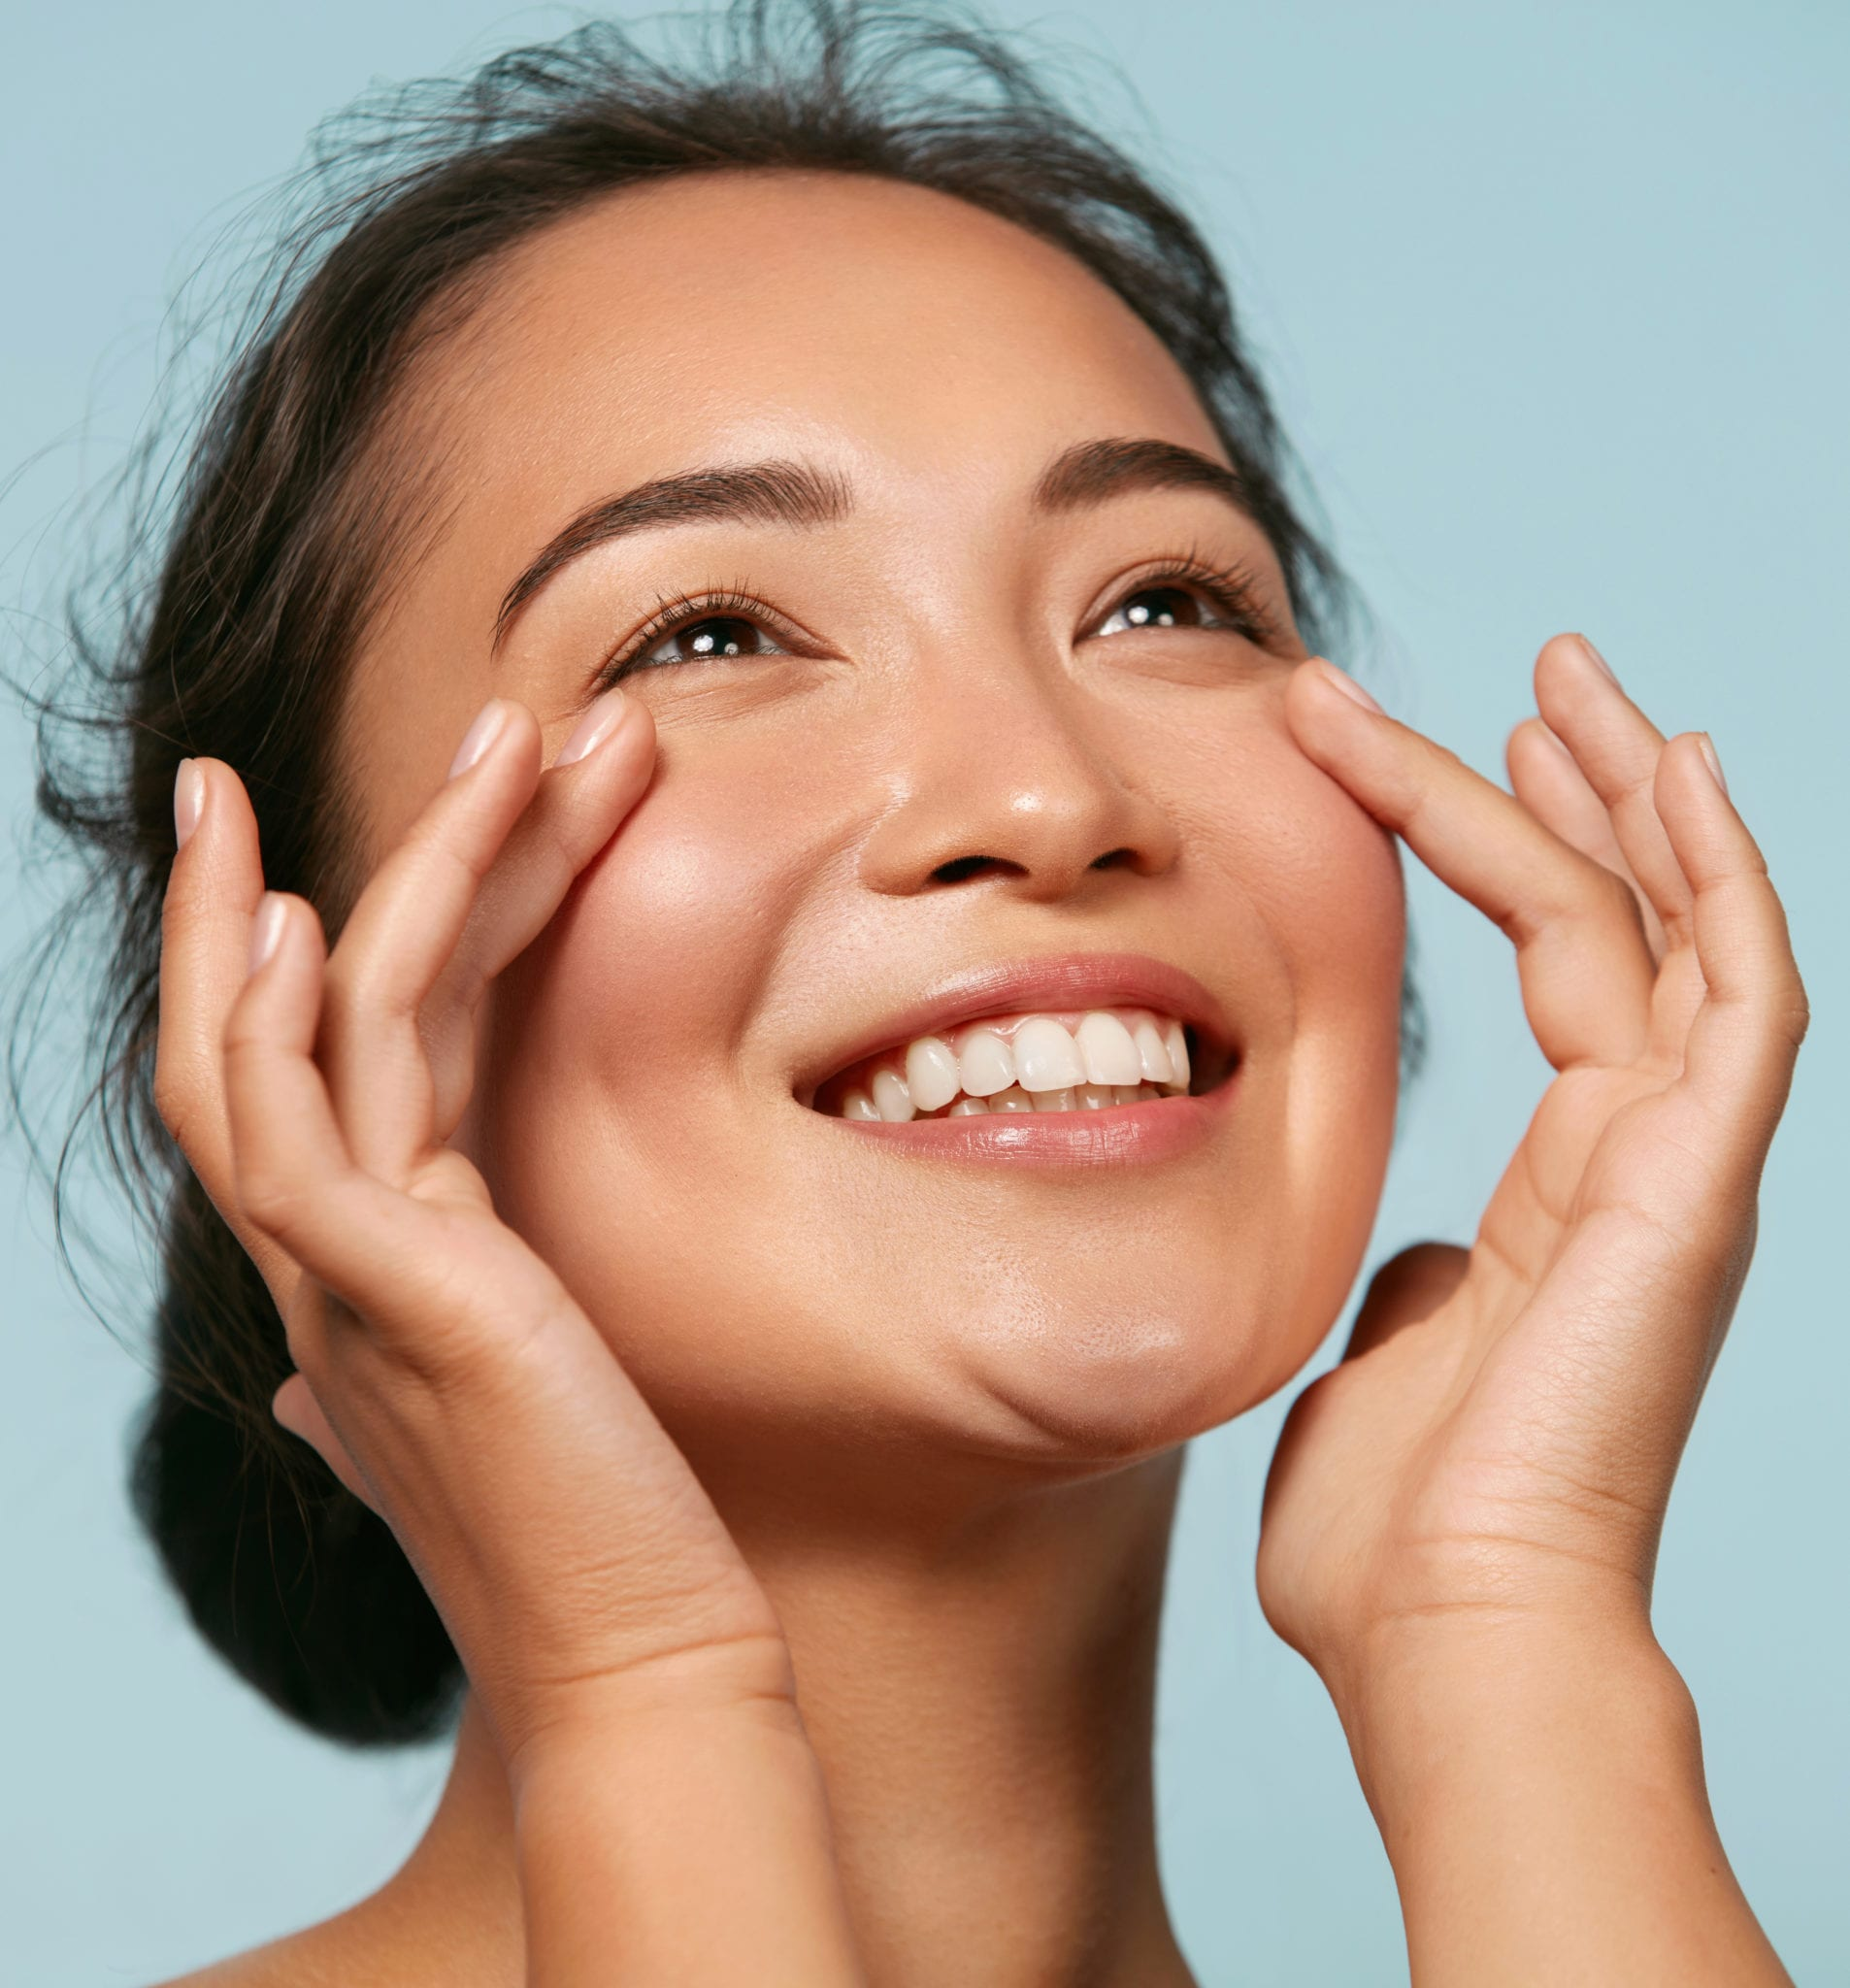 Joules Medical Aesthetics Monthly Memberships - managing the cost of your beauty treatments more easily, exclusively at Joules Medical Aesthetics in Plano and Dallas.